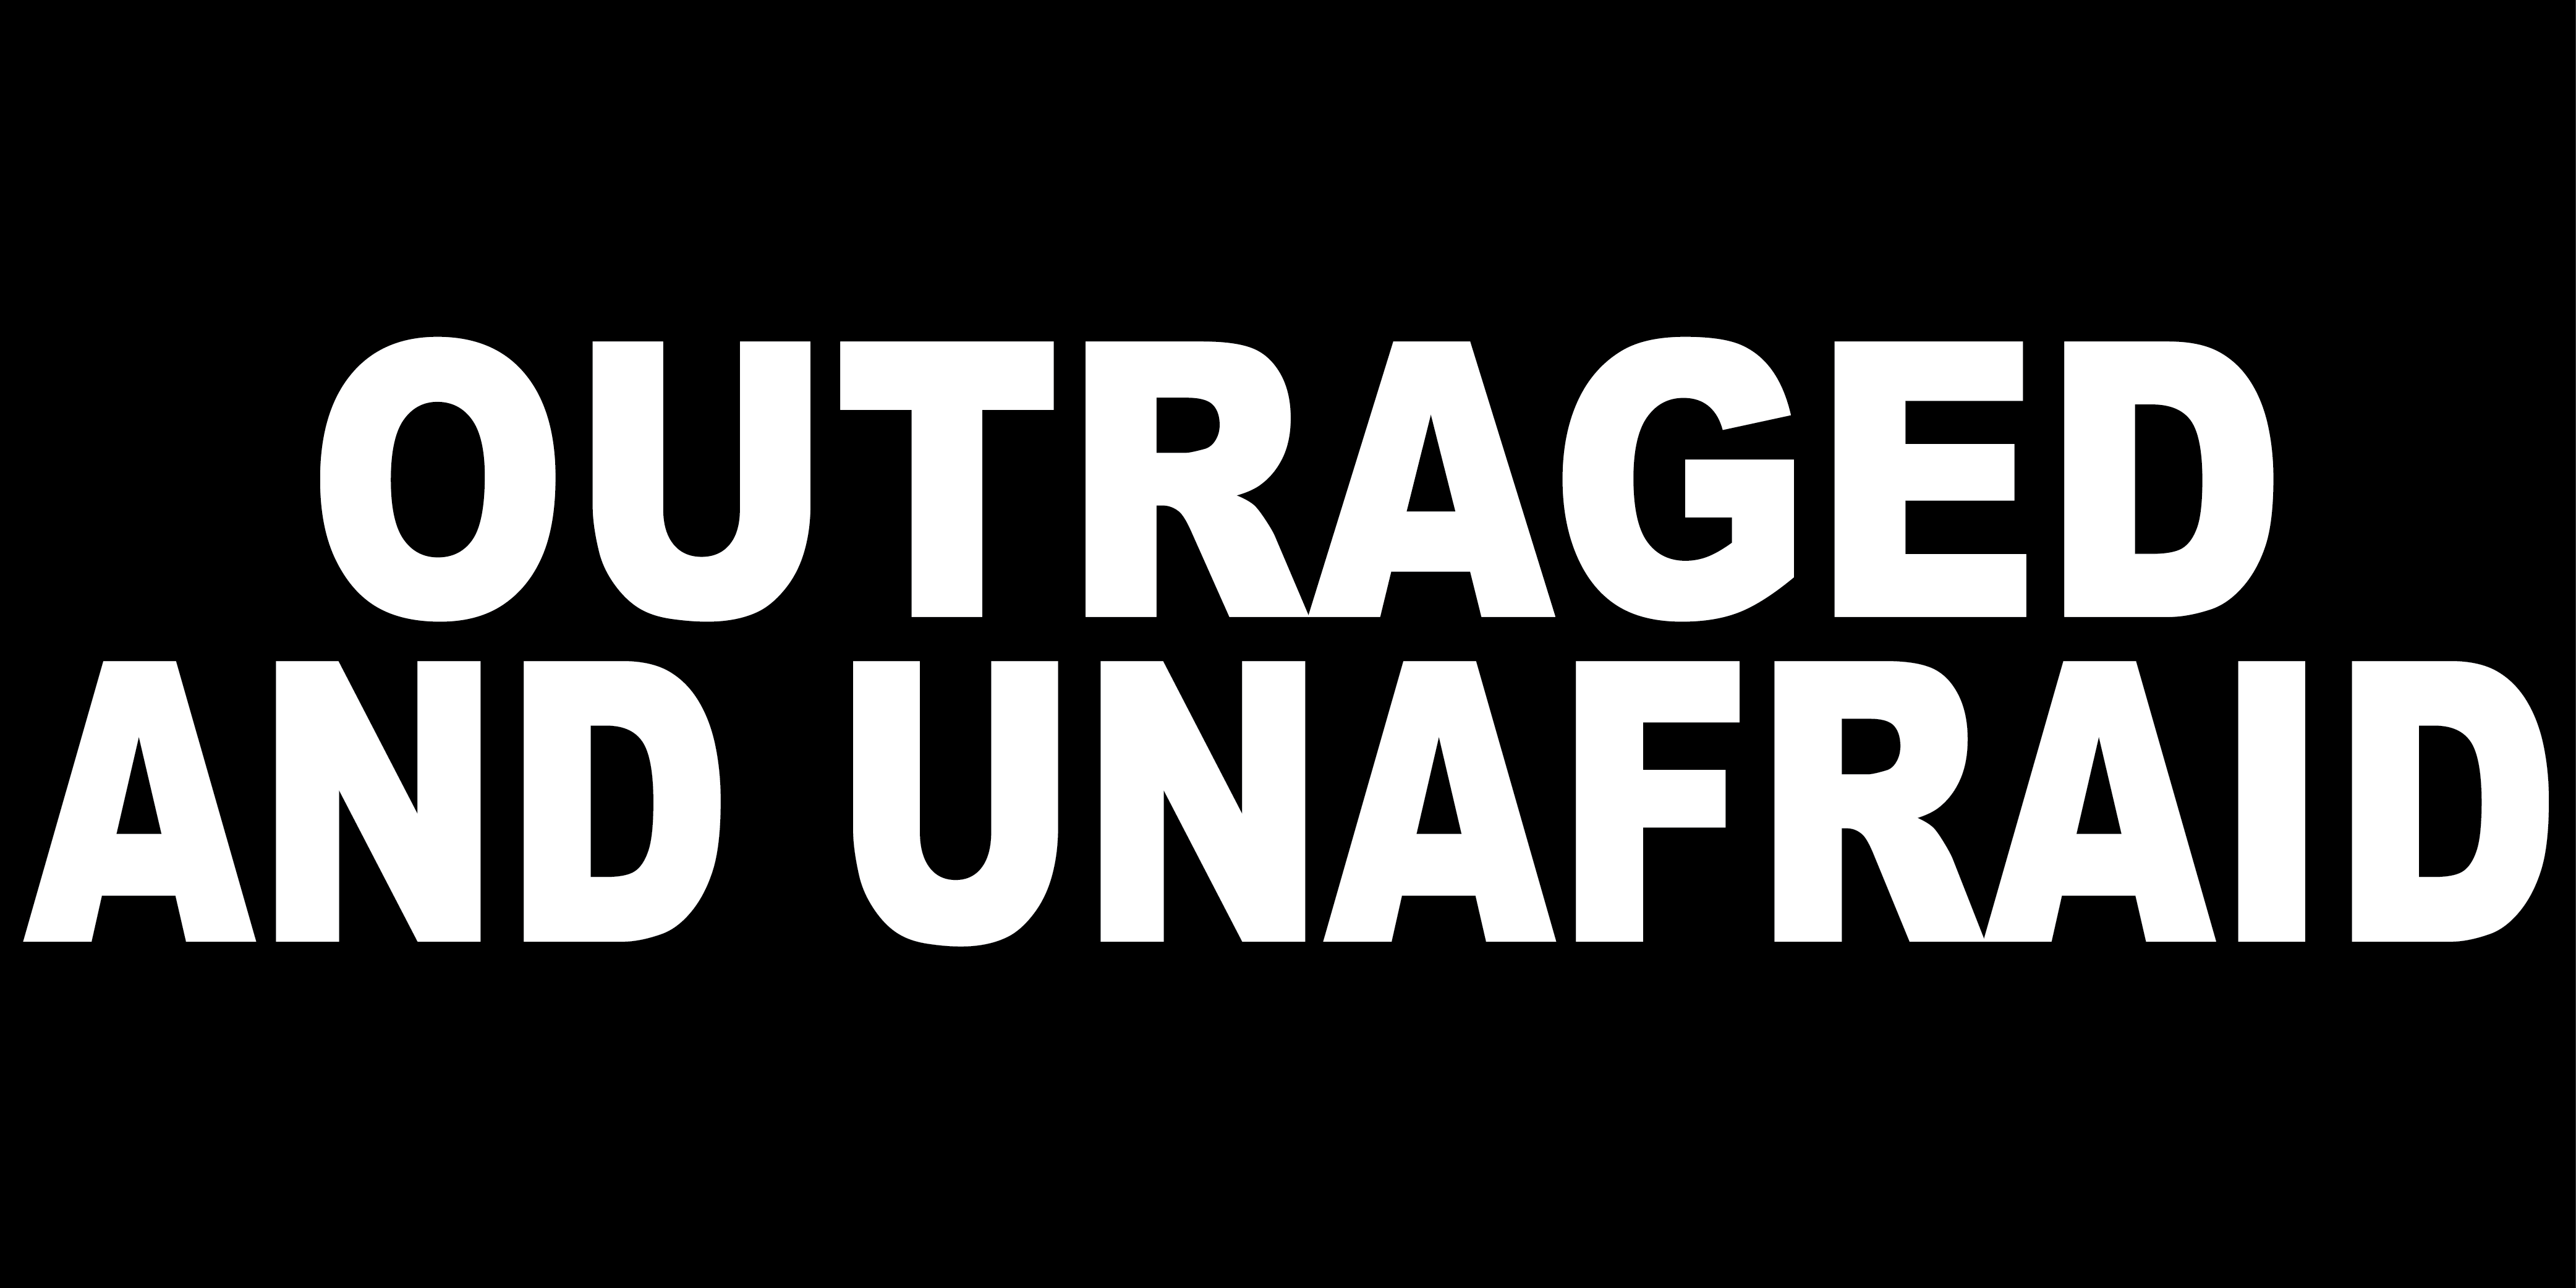 OUTRAGED AND UNAFRAID